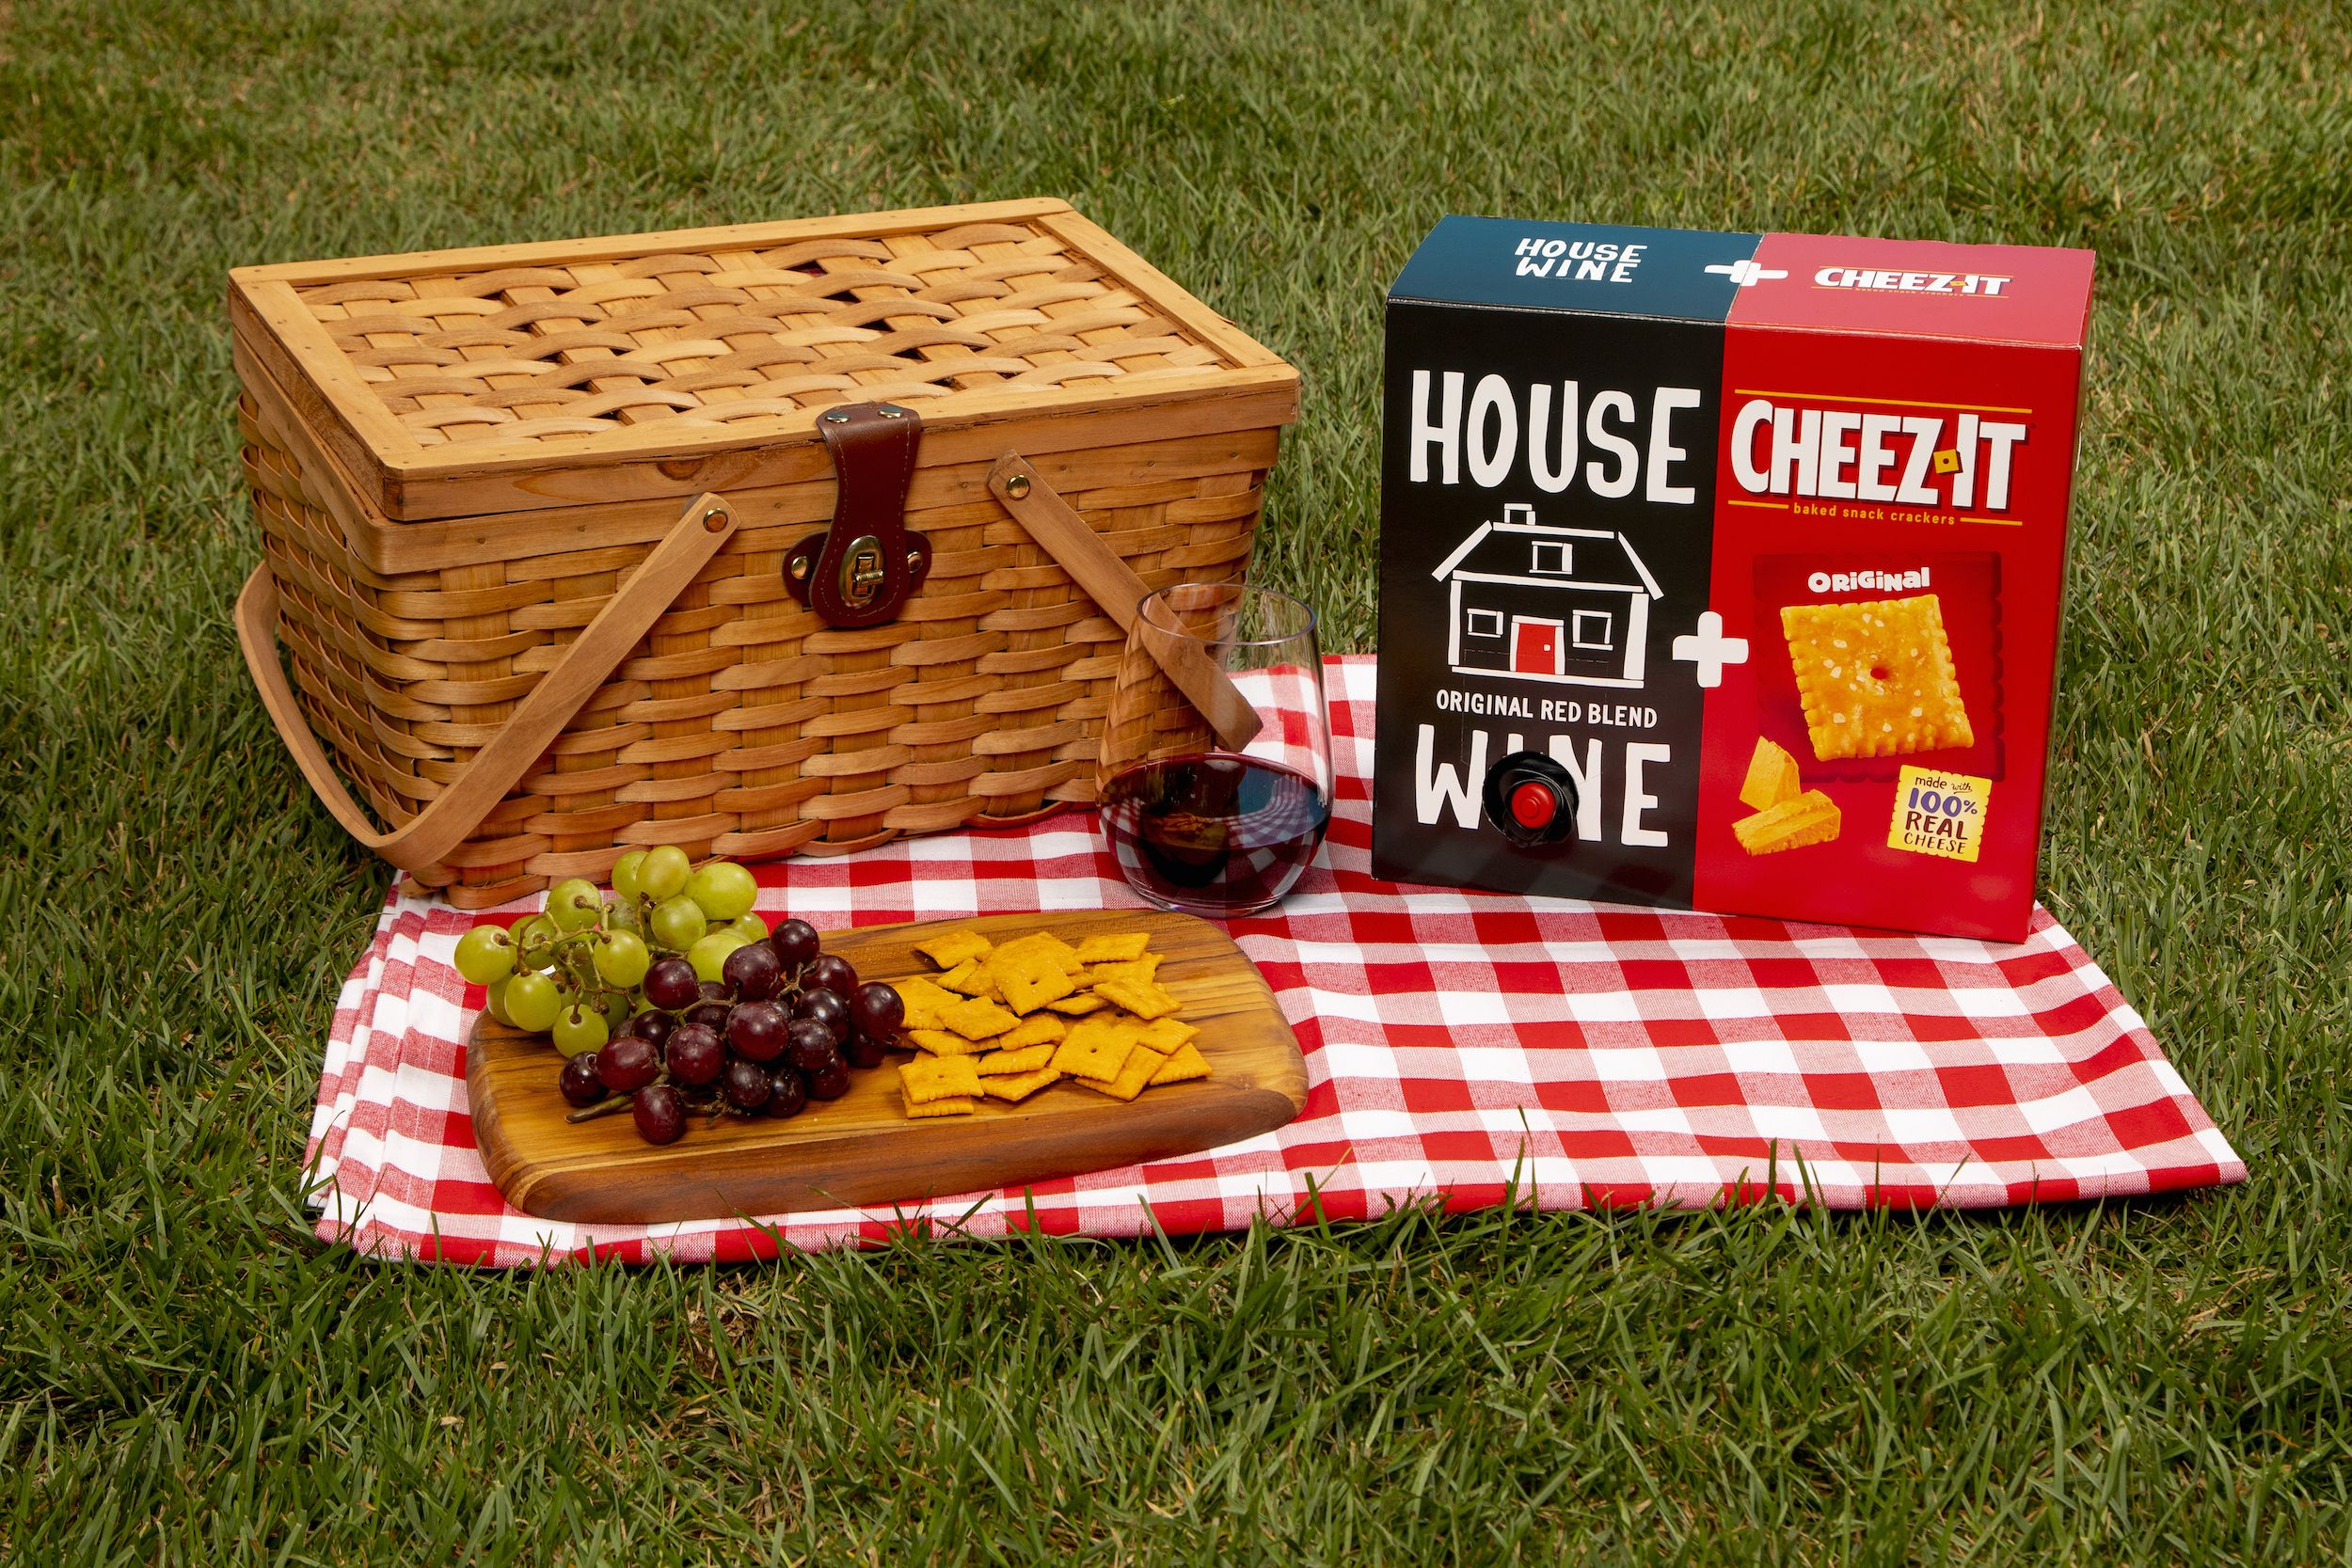 Cheez-It's Brand-New Dual Box Comes With Wine And Cheese, Because What Else Do You Need?